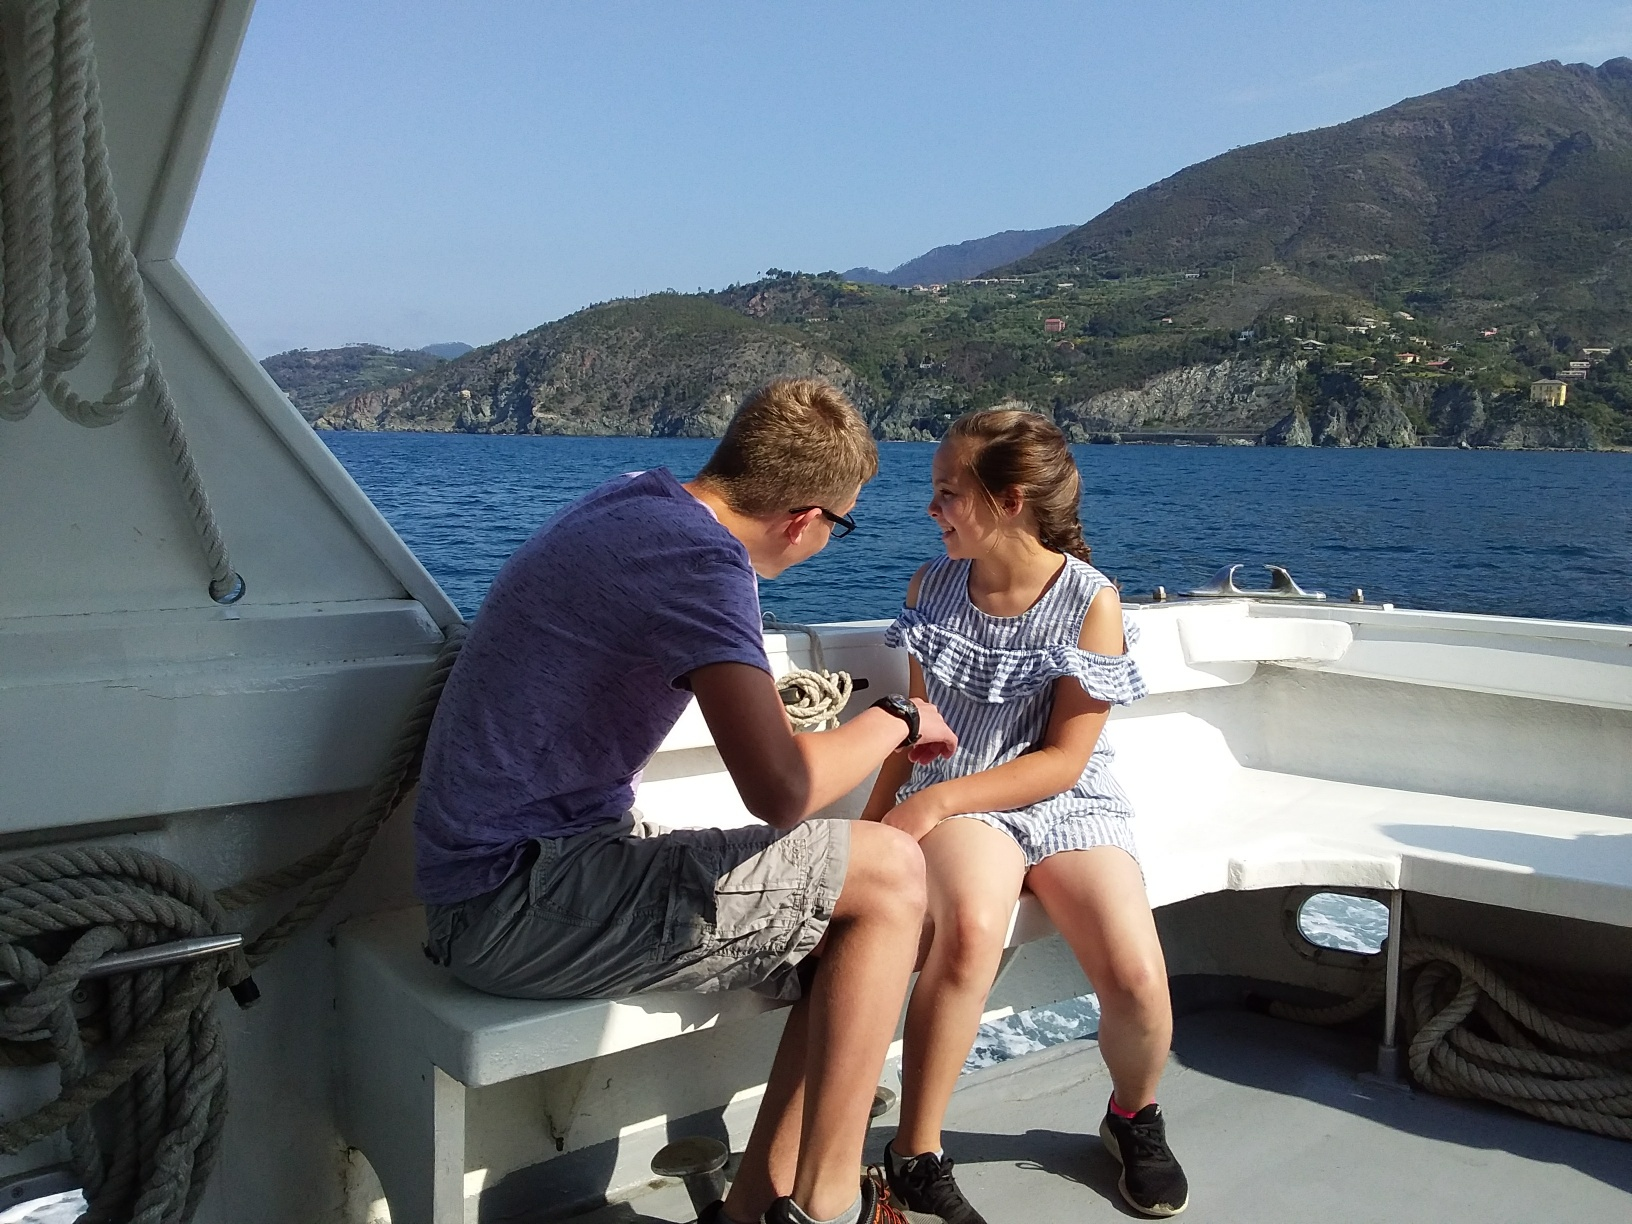 Kids love the ferry boats between Levanto and the villages of the Cinque Terre.